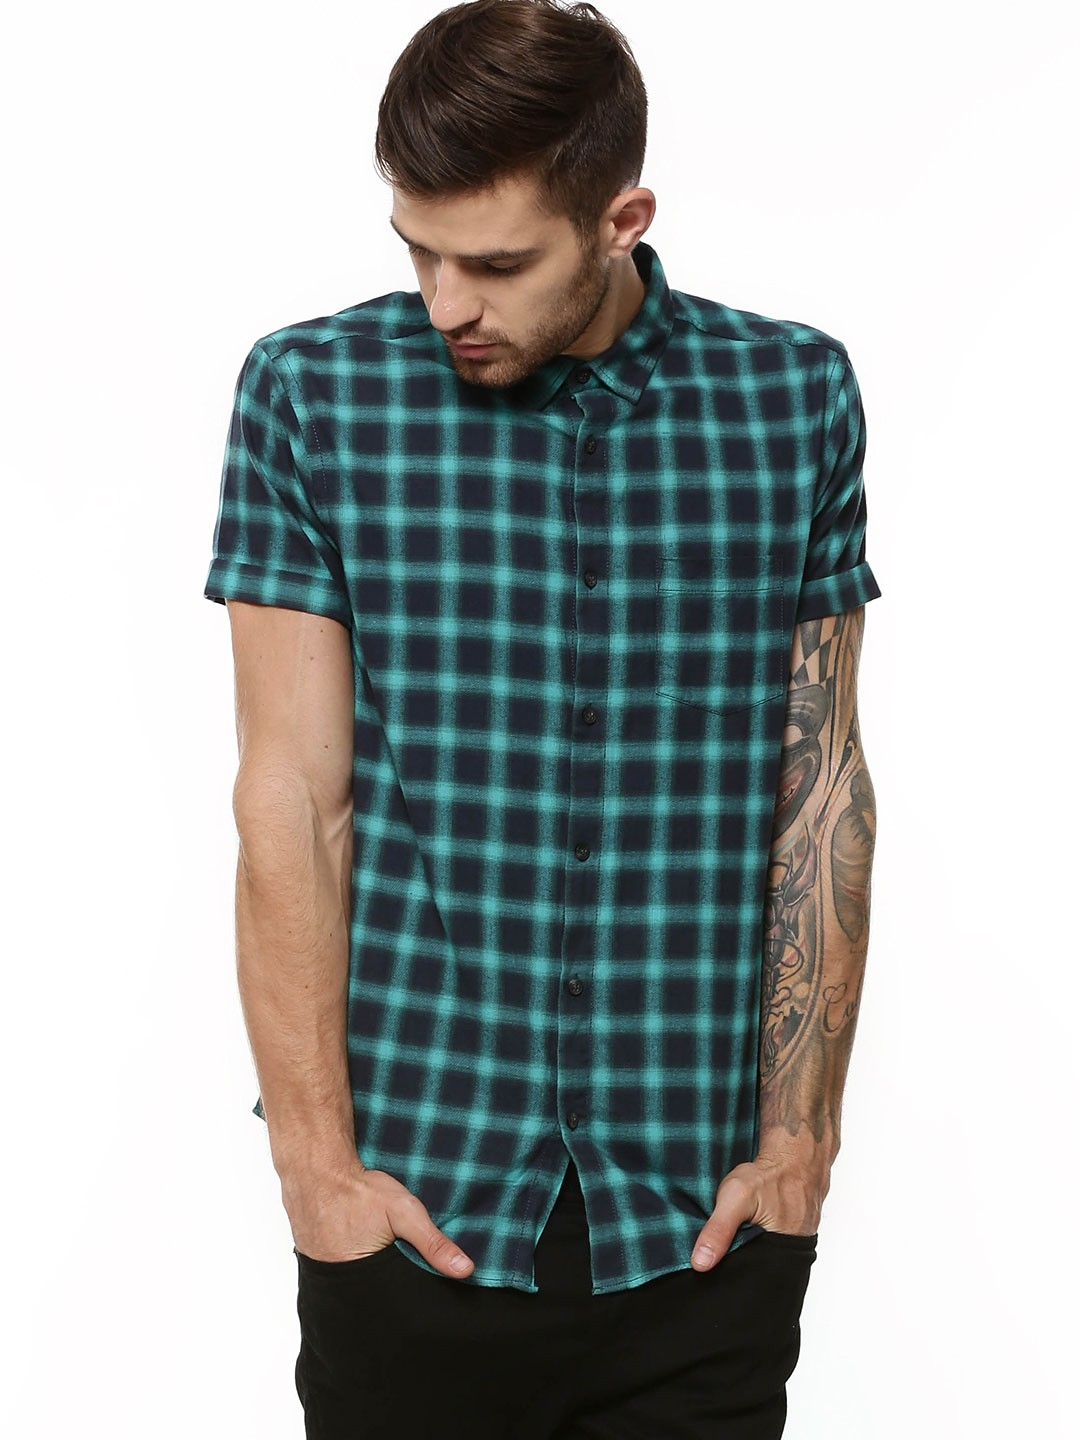 Find great deals on eBay for checks shirts. Shop with confidence.